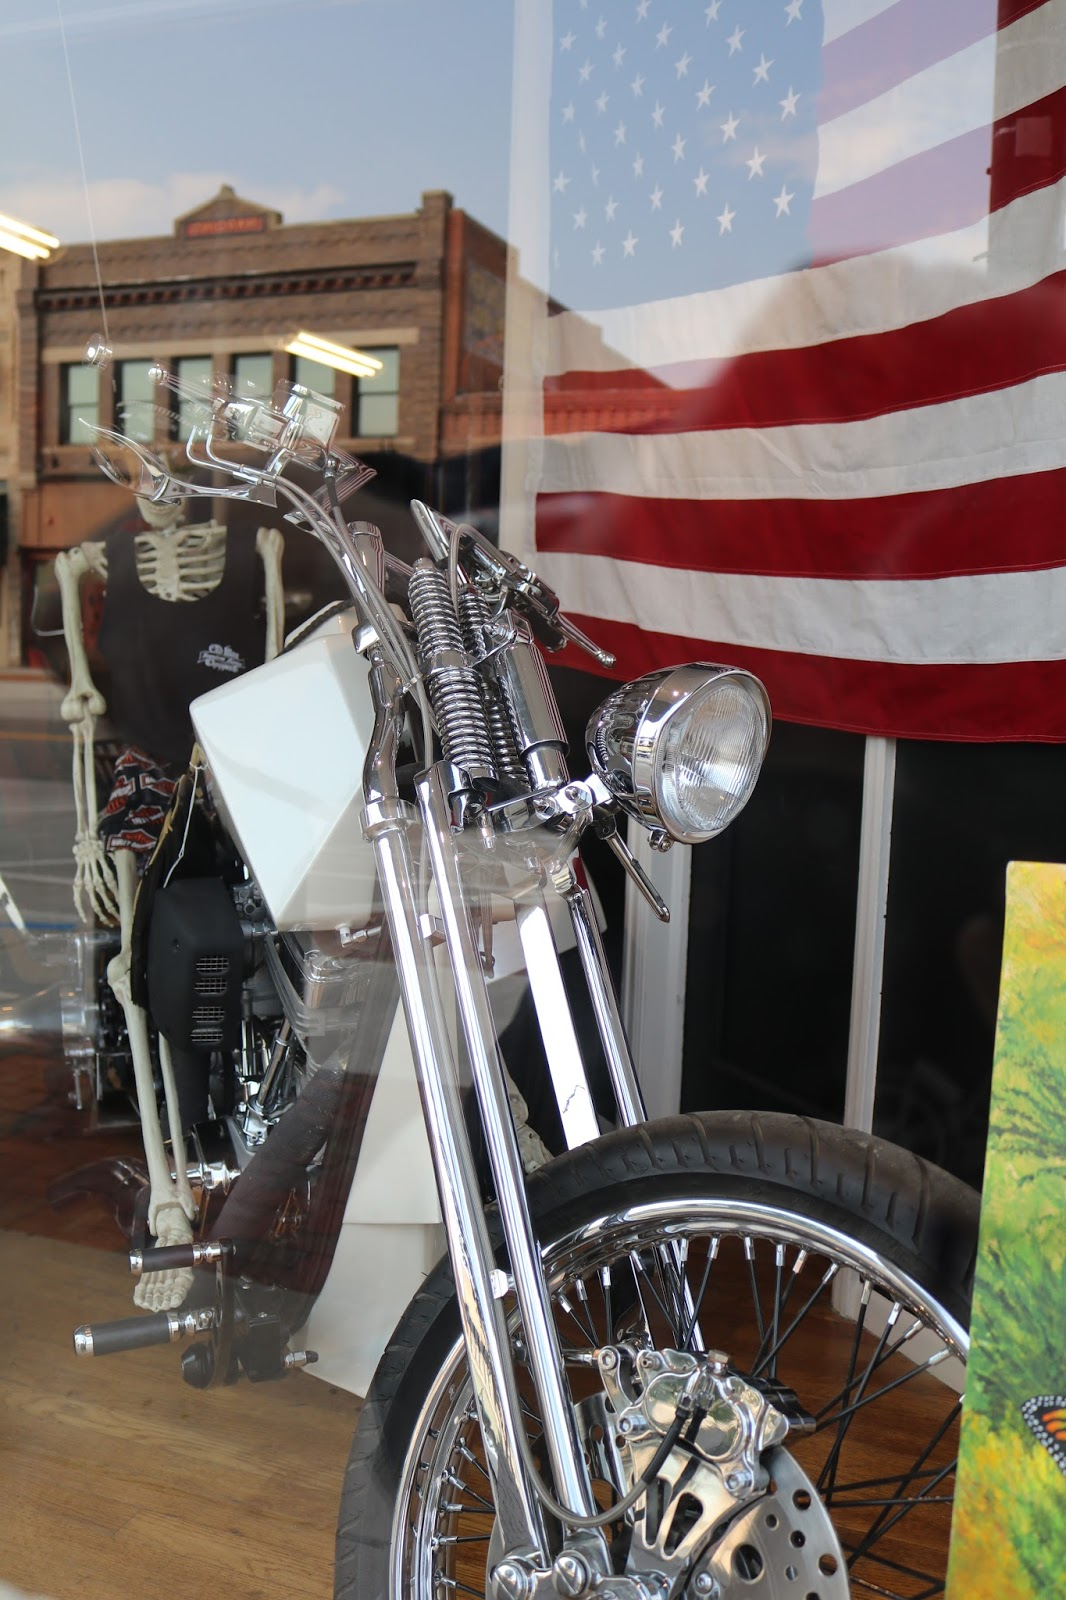 OldMotoDude: Old Max Trike For Sale At The Cell House